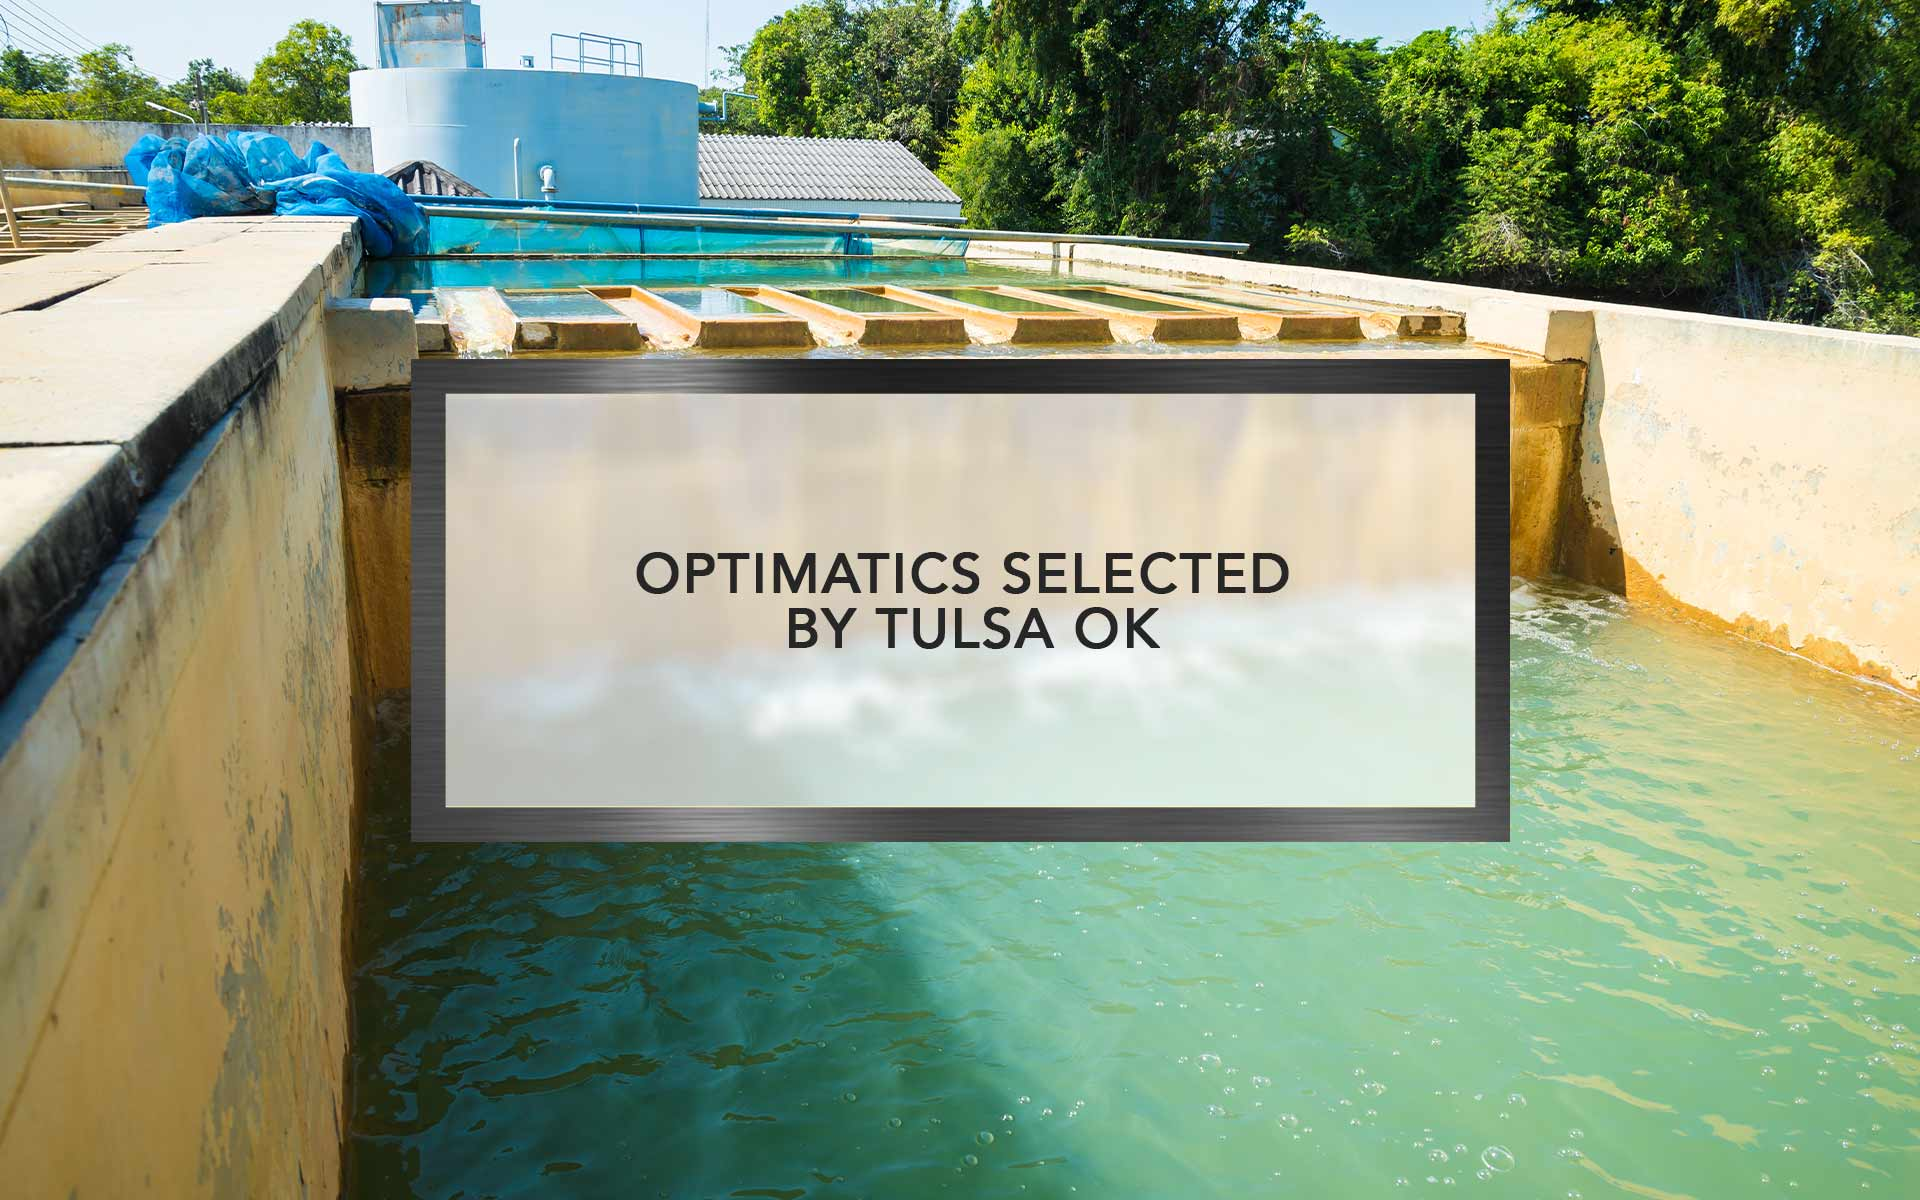 Optimatics Selected by Tulsa OK